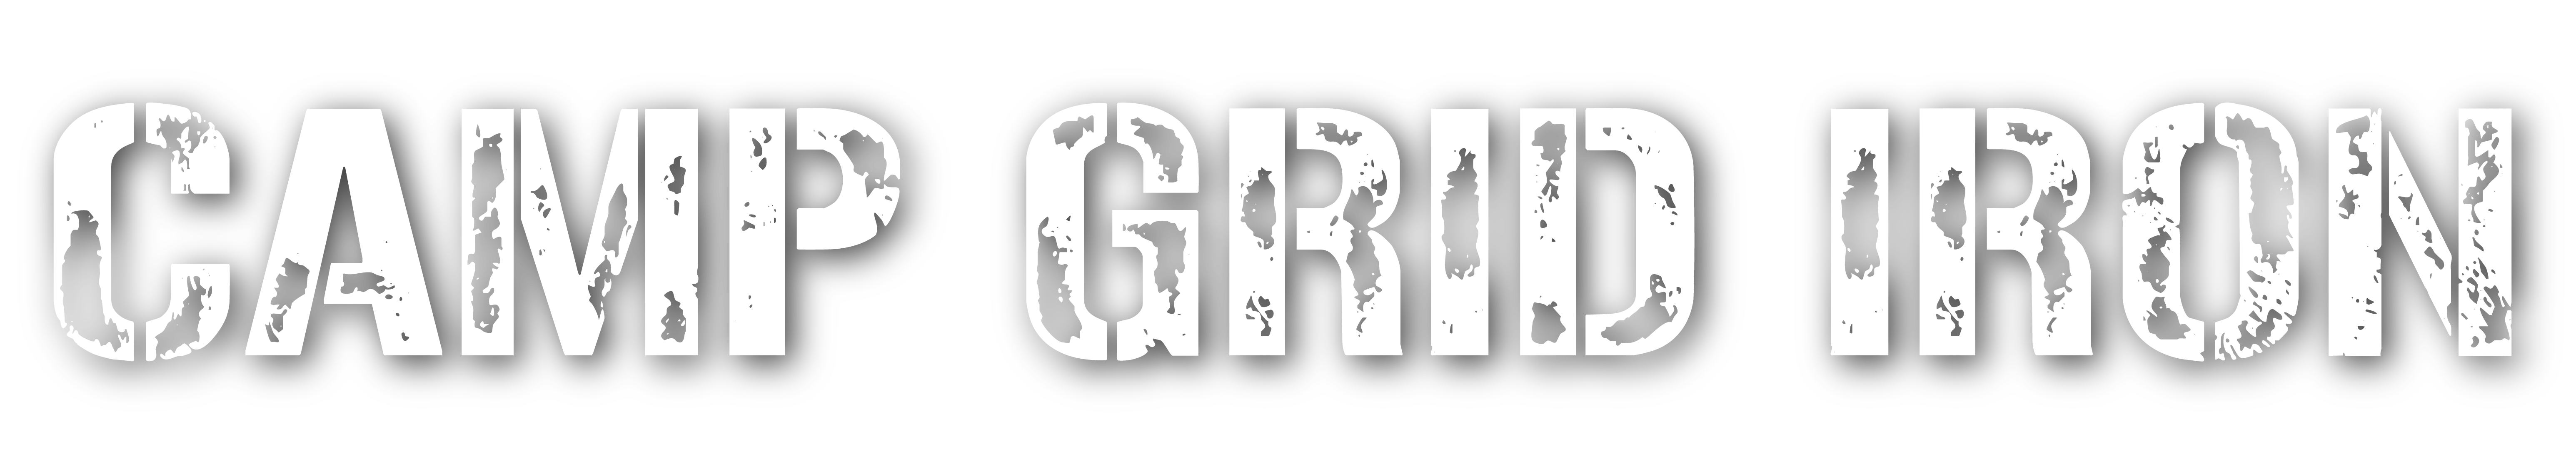 Camp Grid Iron logo written in distressed military lettering